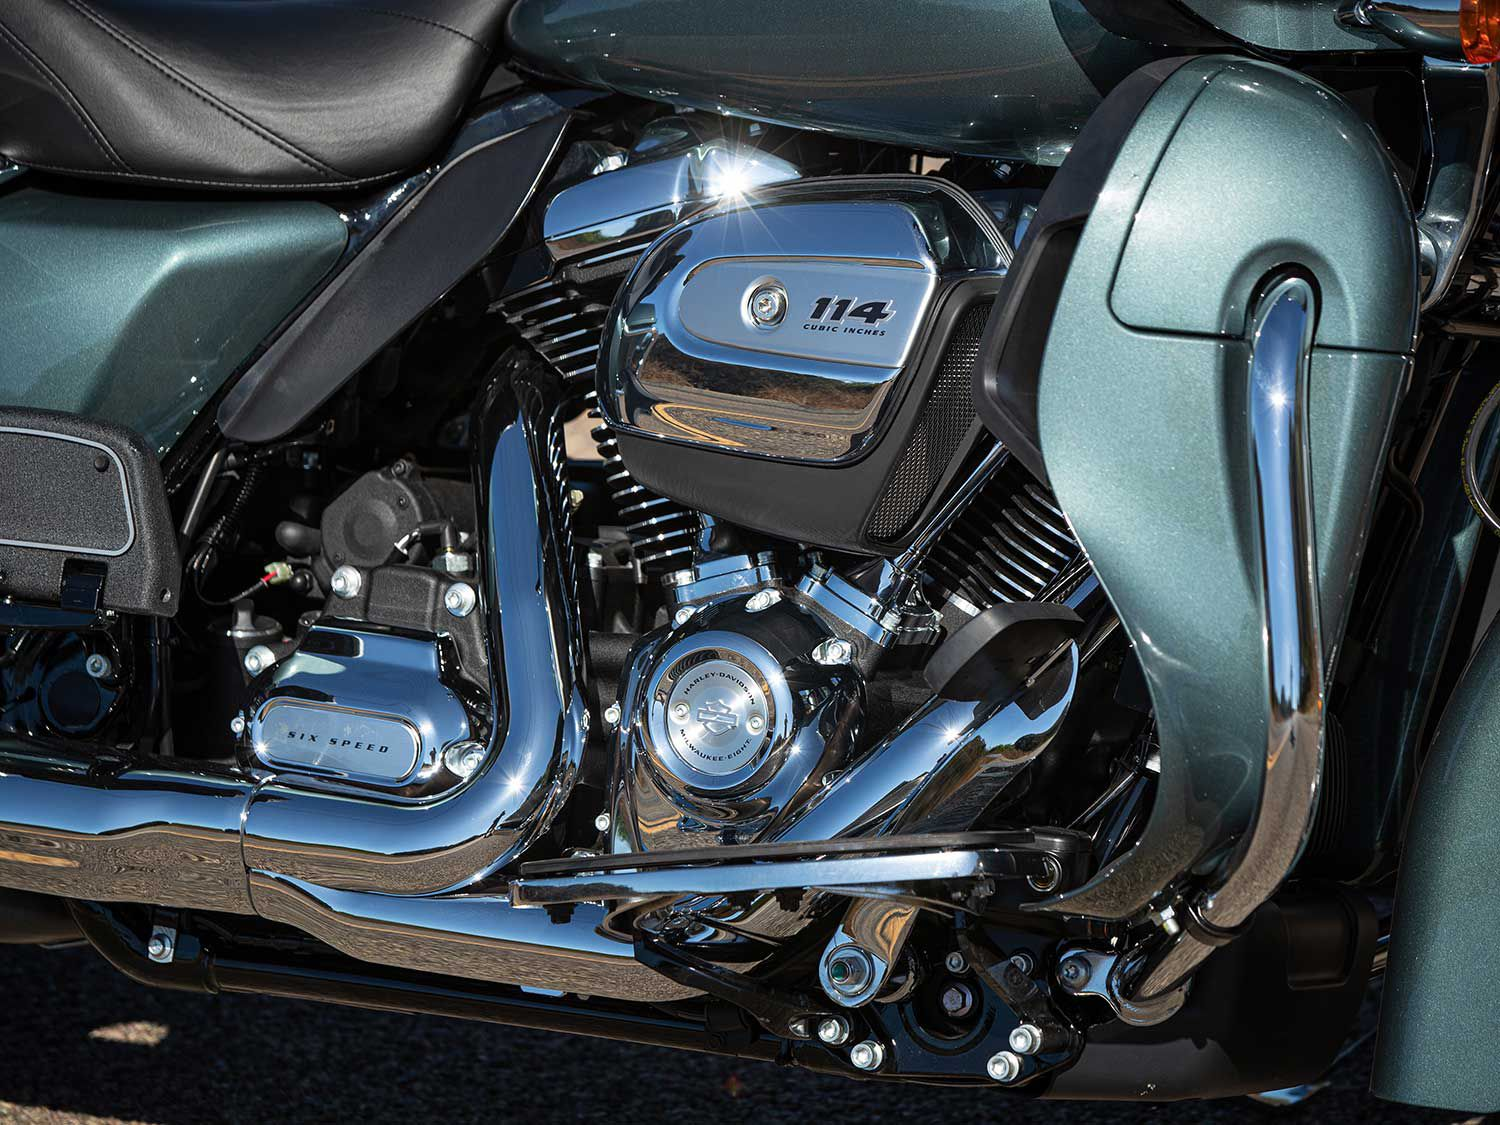 The 2020 Road Glide Limited comes standard with a Twin-Cooled Milwaukee-Eight 114.